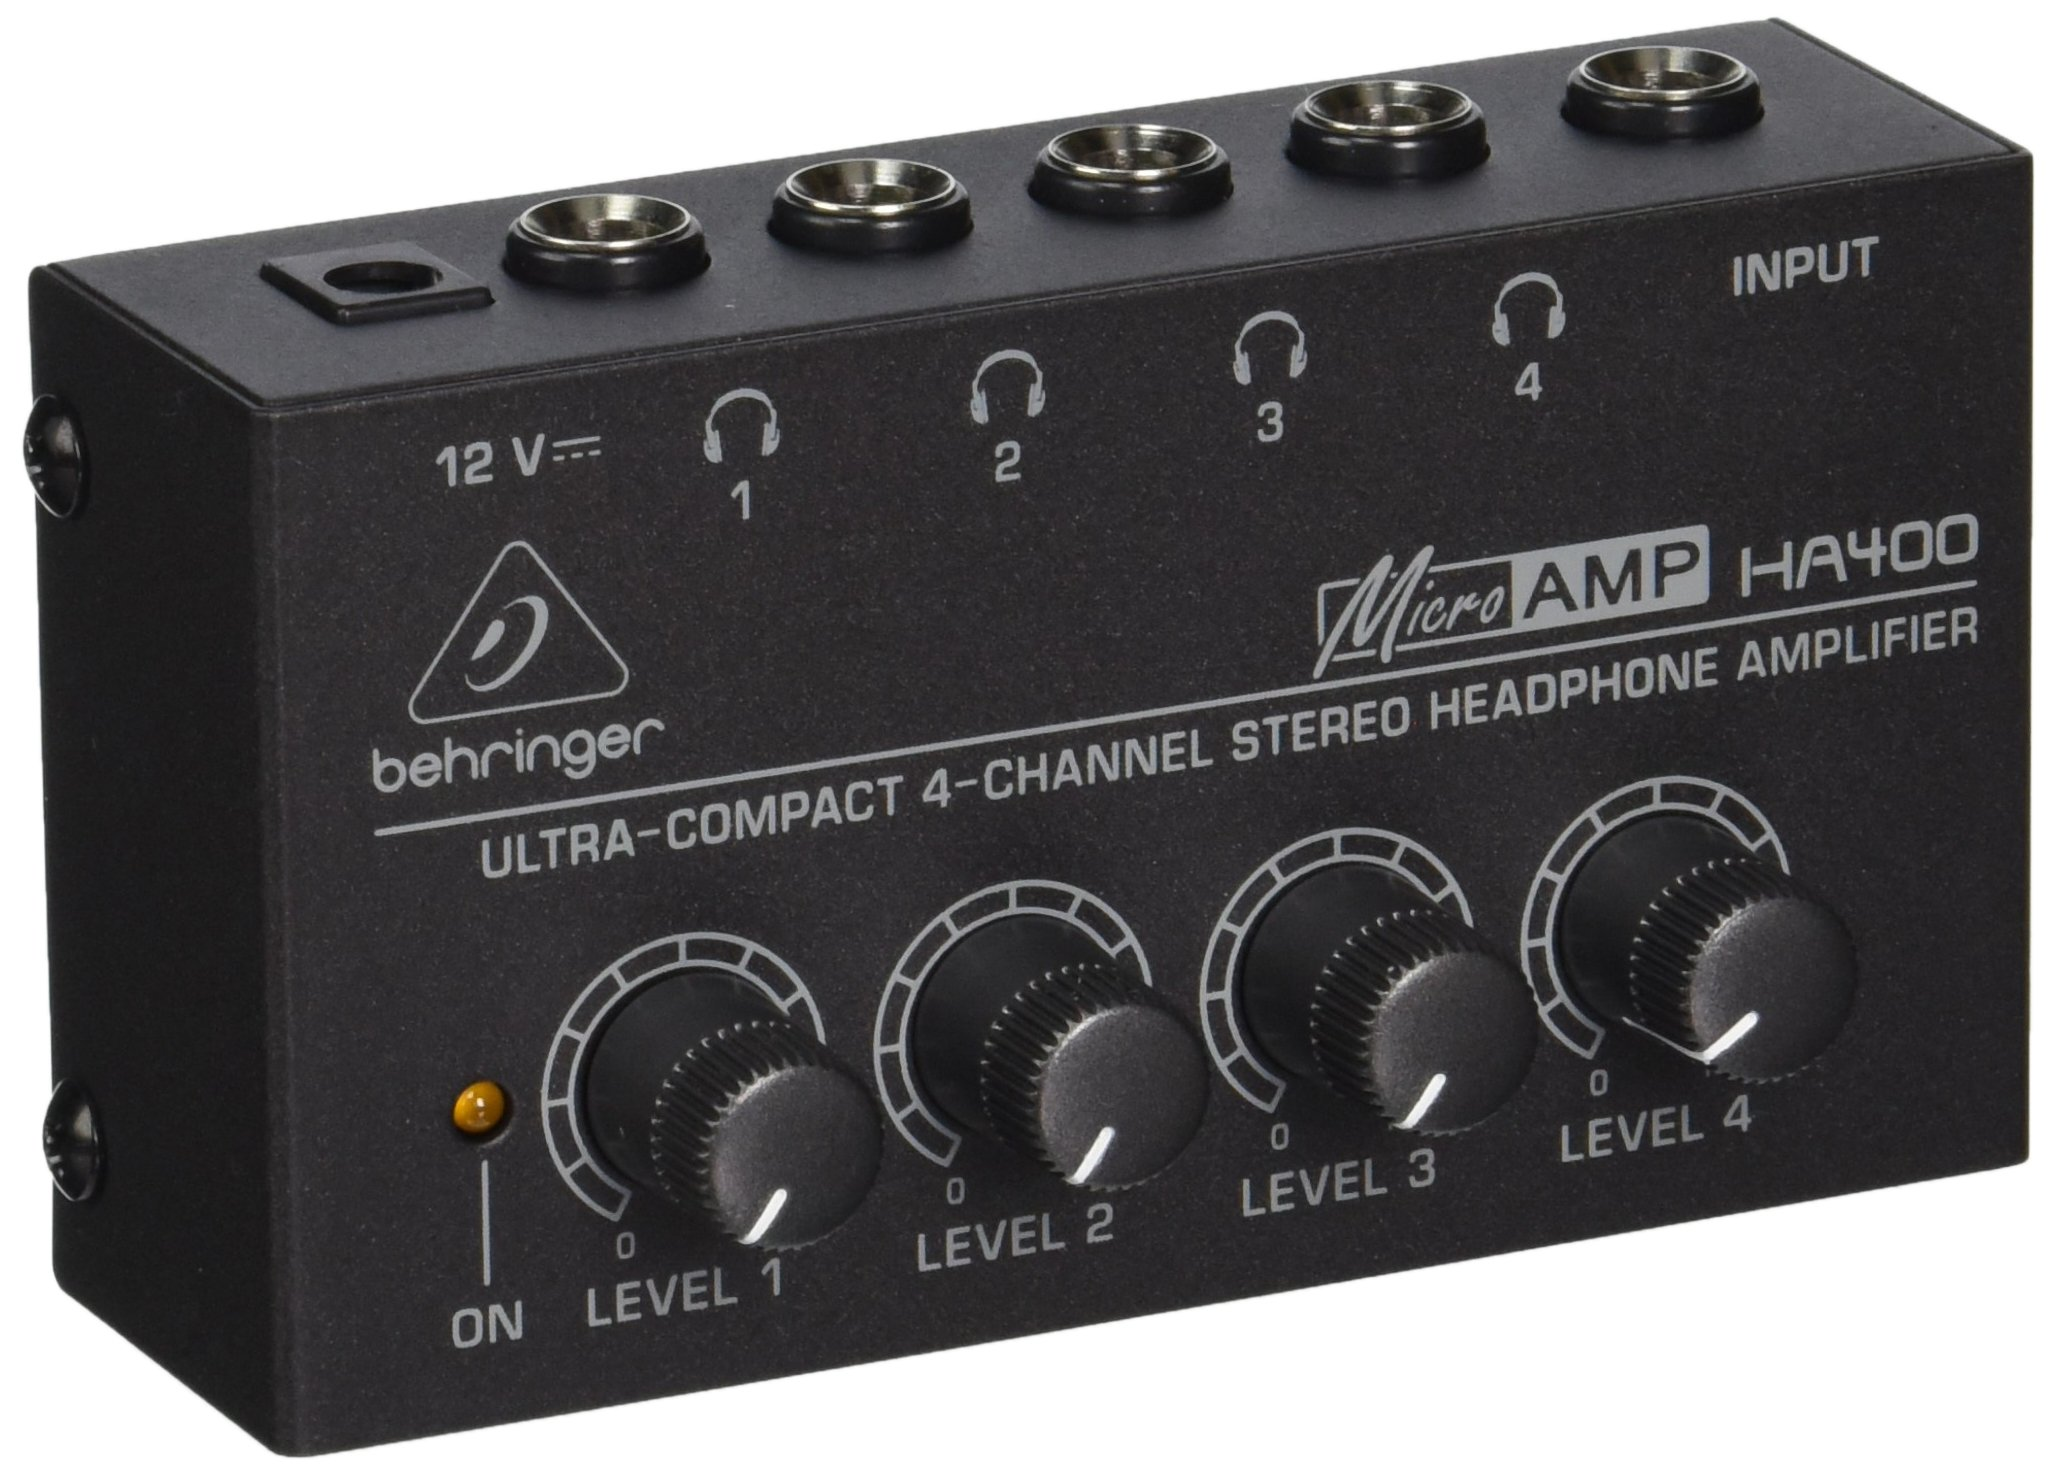 Behringer MICROAMP HA400 Amplificateur Casque 4 canaux product image